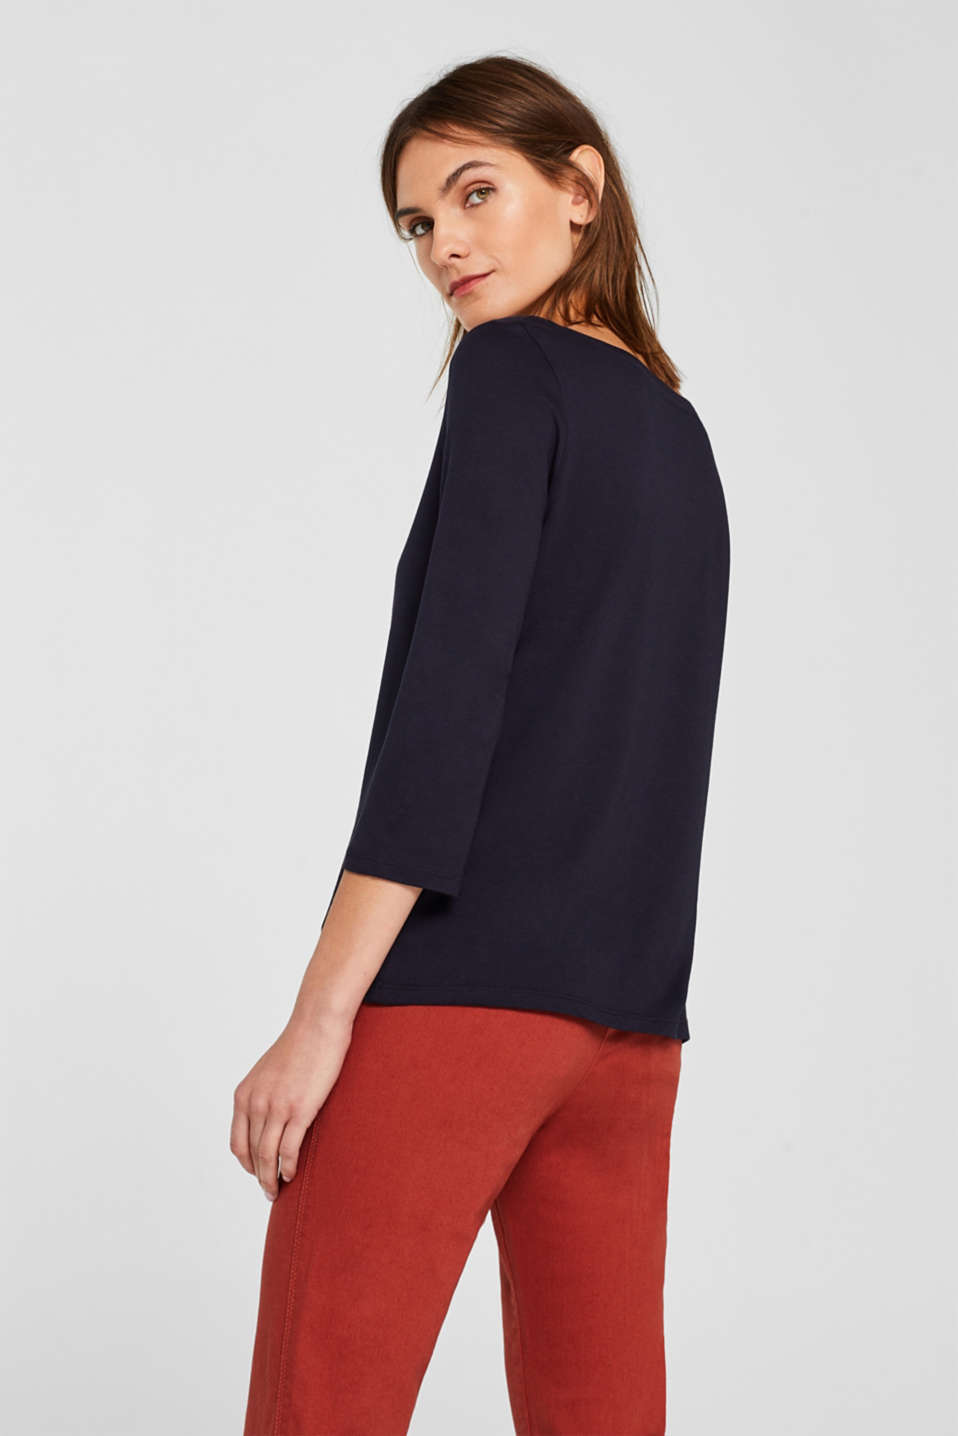 Two-pack: Long sleeve top with organic cotton, NAVY, detail image number 2